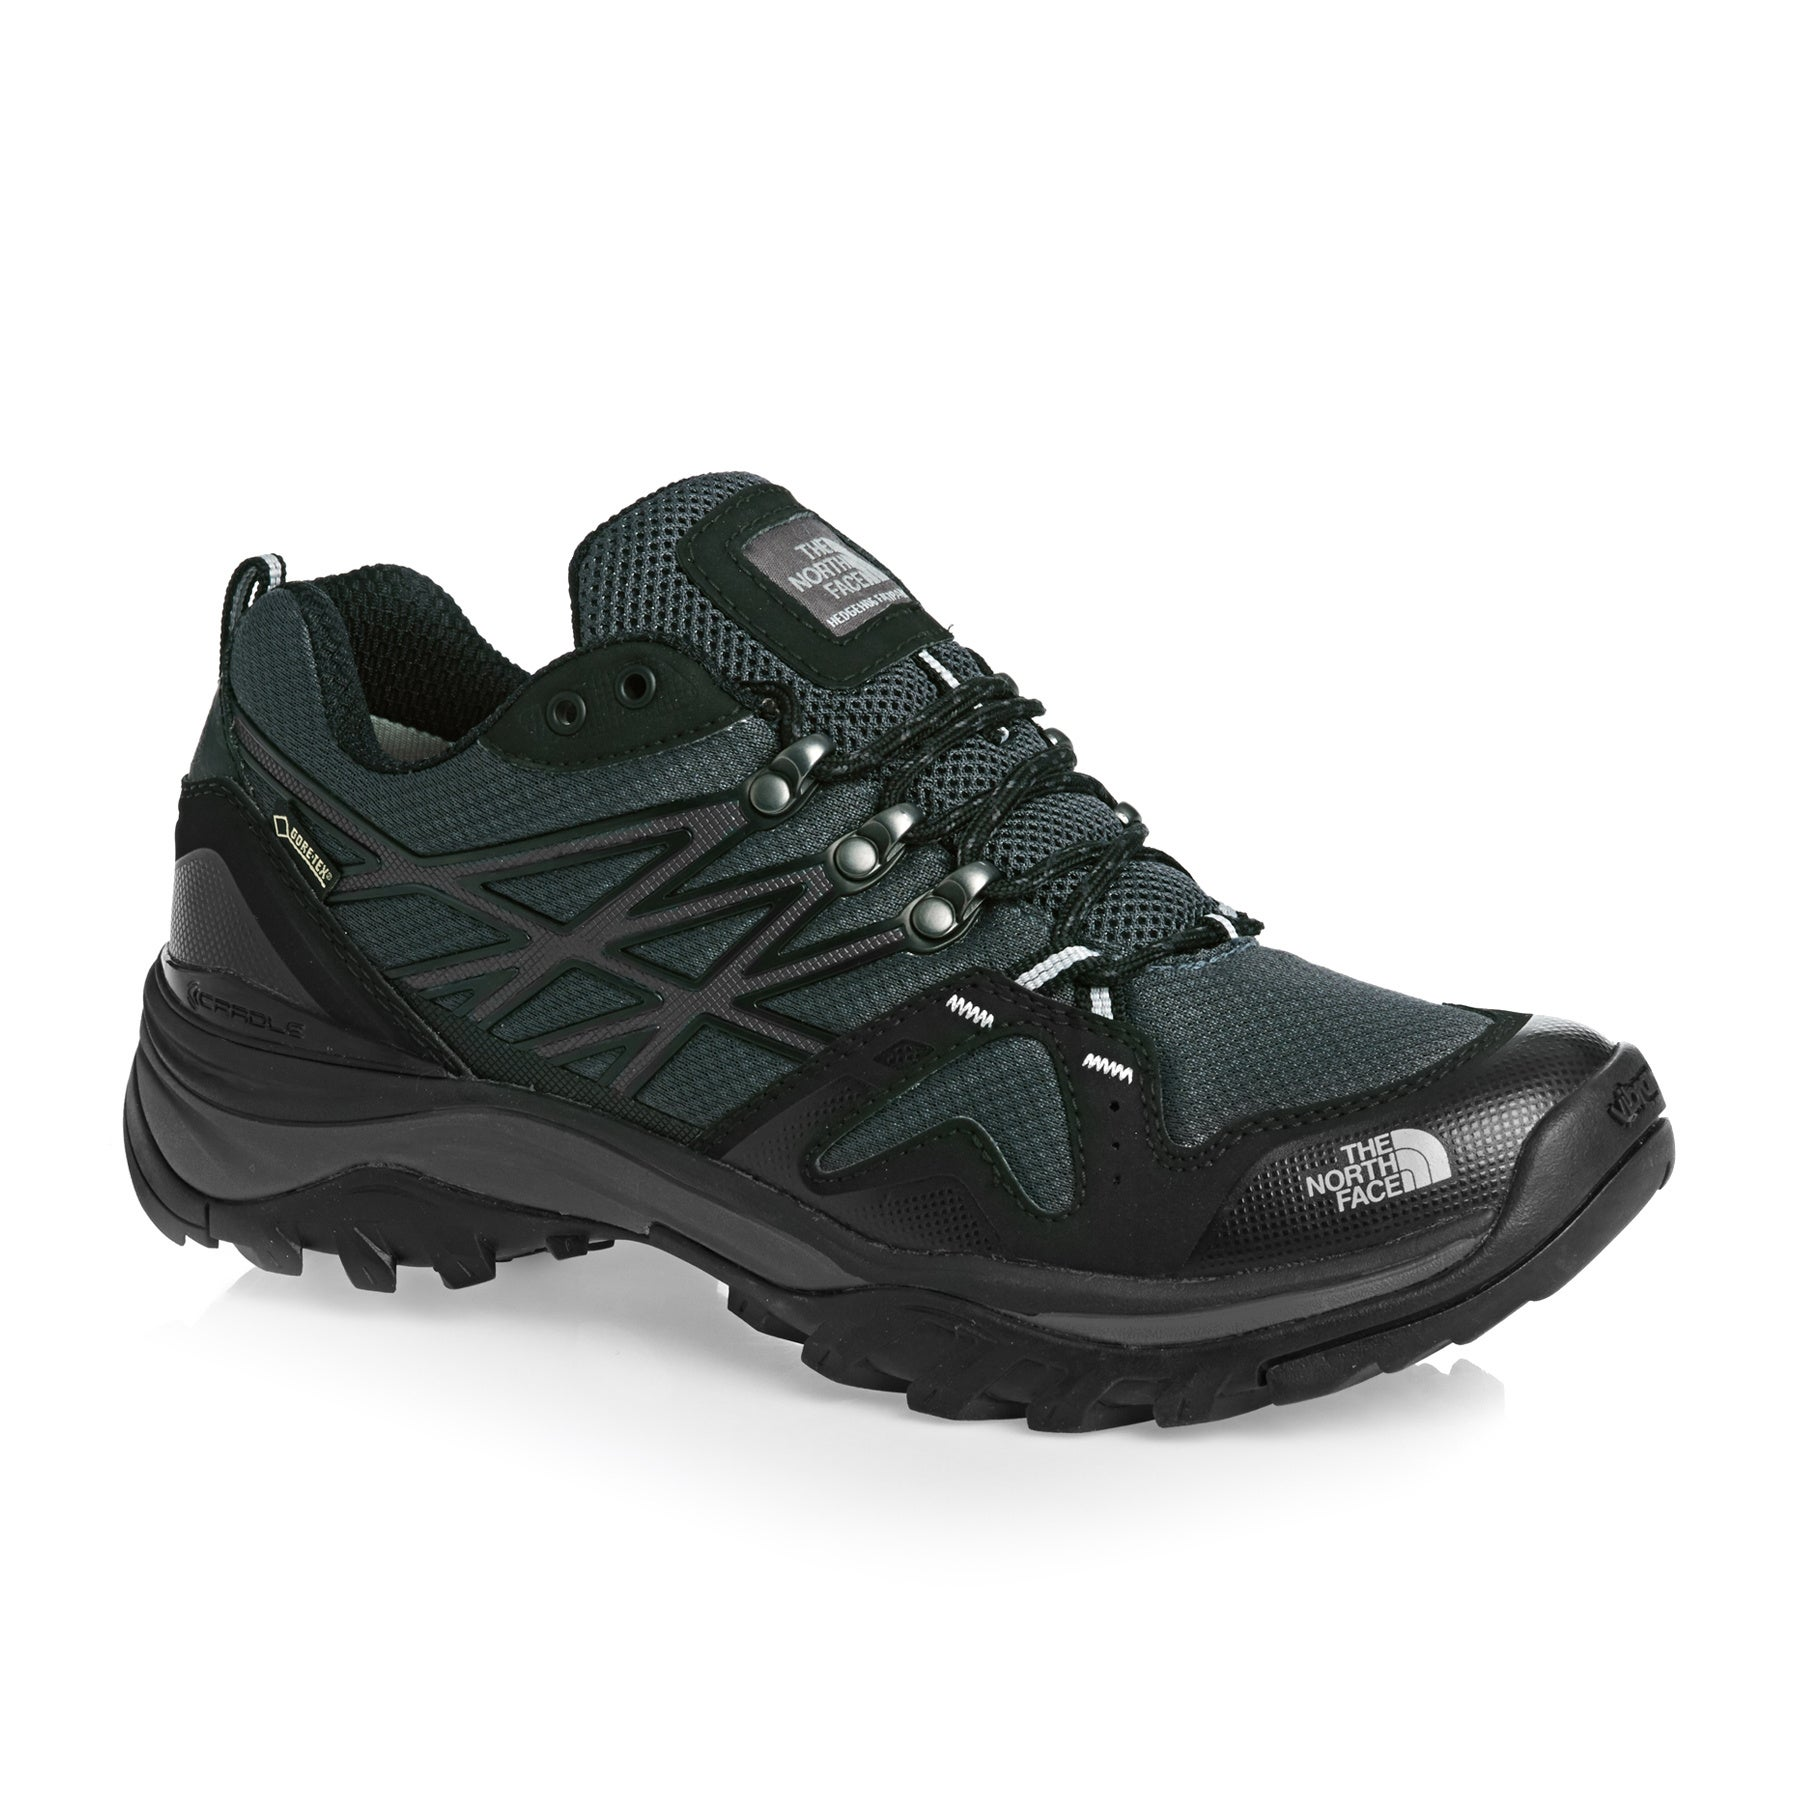 North Face Hedgehog Fastpack GTX Walking Shoes - TNF Black High Rise Grey